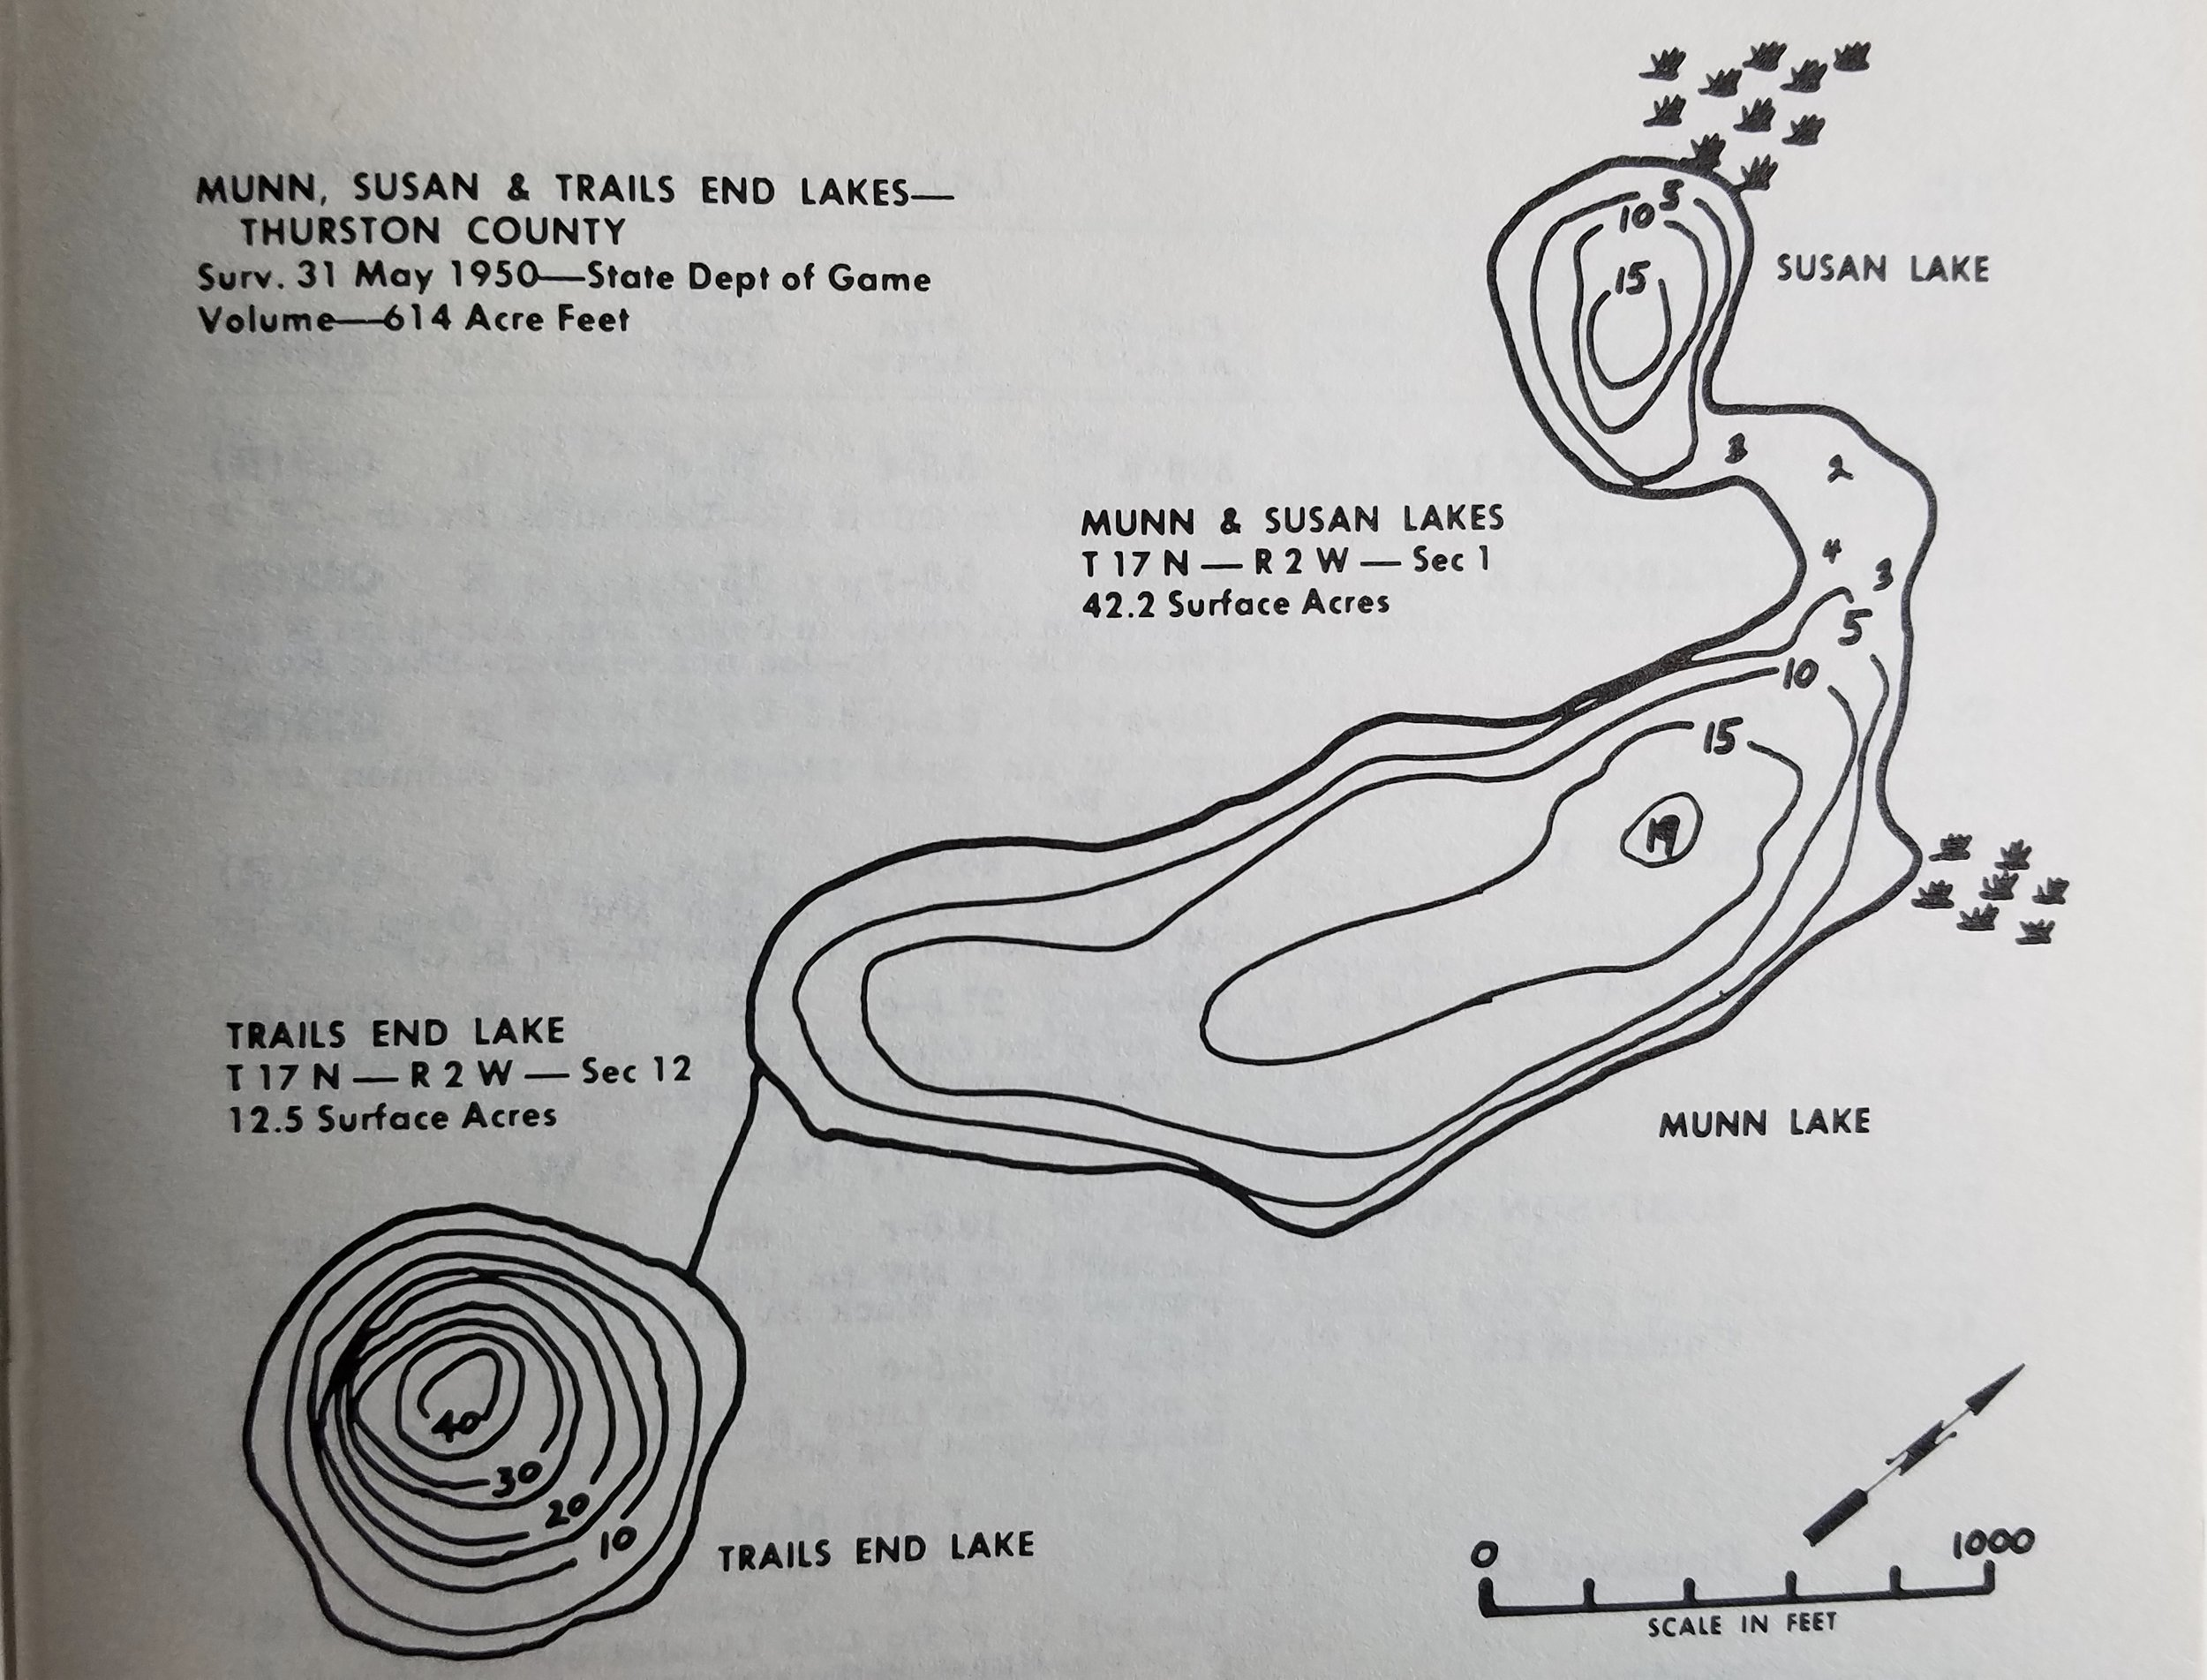 Contours of Munn Lake from the marvelous 2-volume inventory,   Lakes of Western Washington   ,  by Earnest Woodcut. Washington Dept. of Ecology, 1973. (Both Susan and Trails End Lake are not publicly accessible)